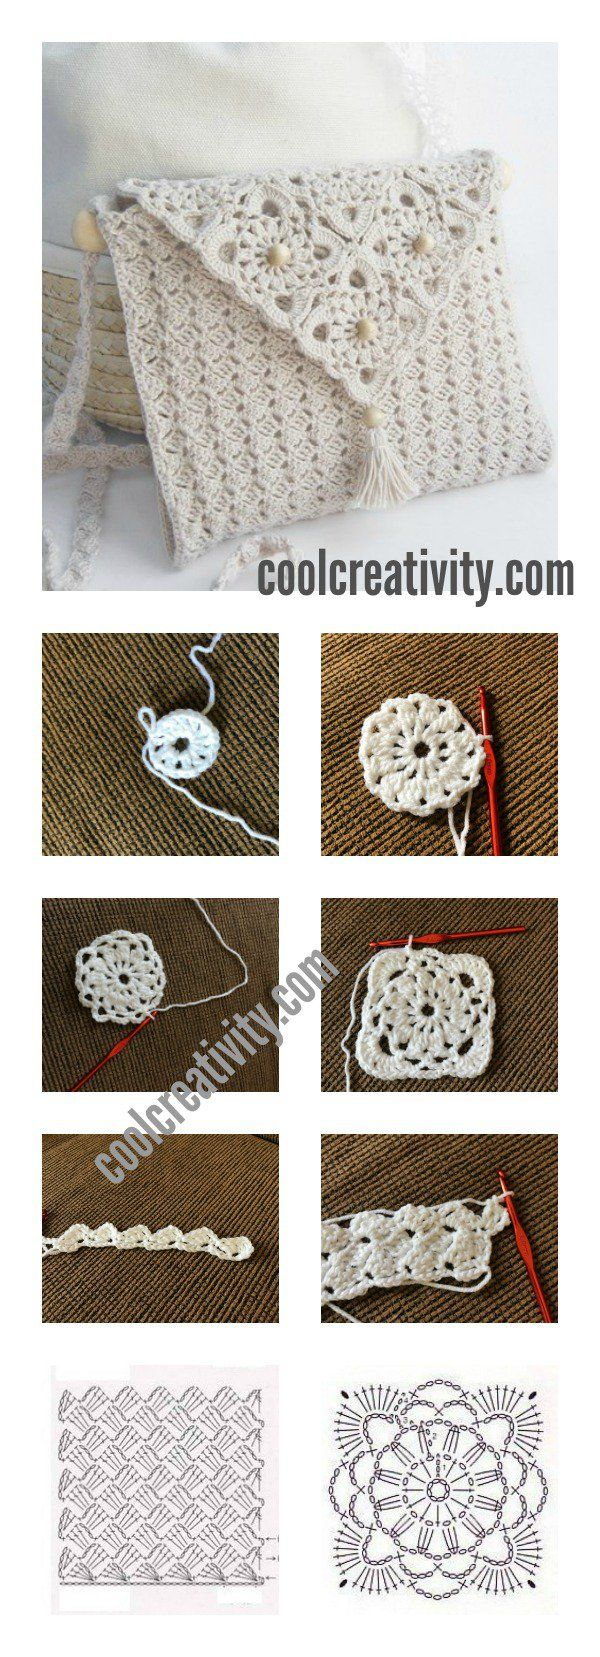 1000 images about crochet thread mini amp micro on pinterest - Crochet Pretty Handbag With Graphics And Free Pattern